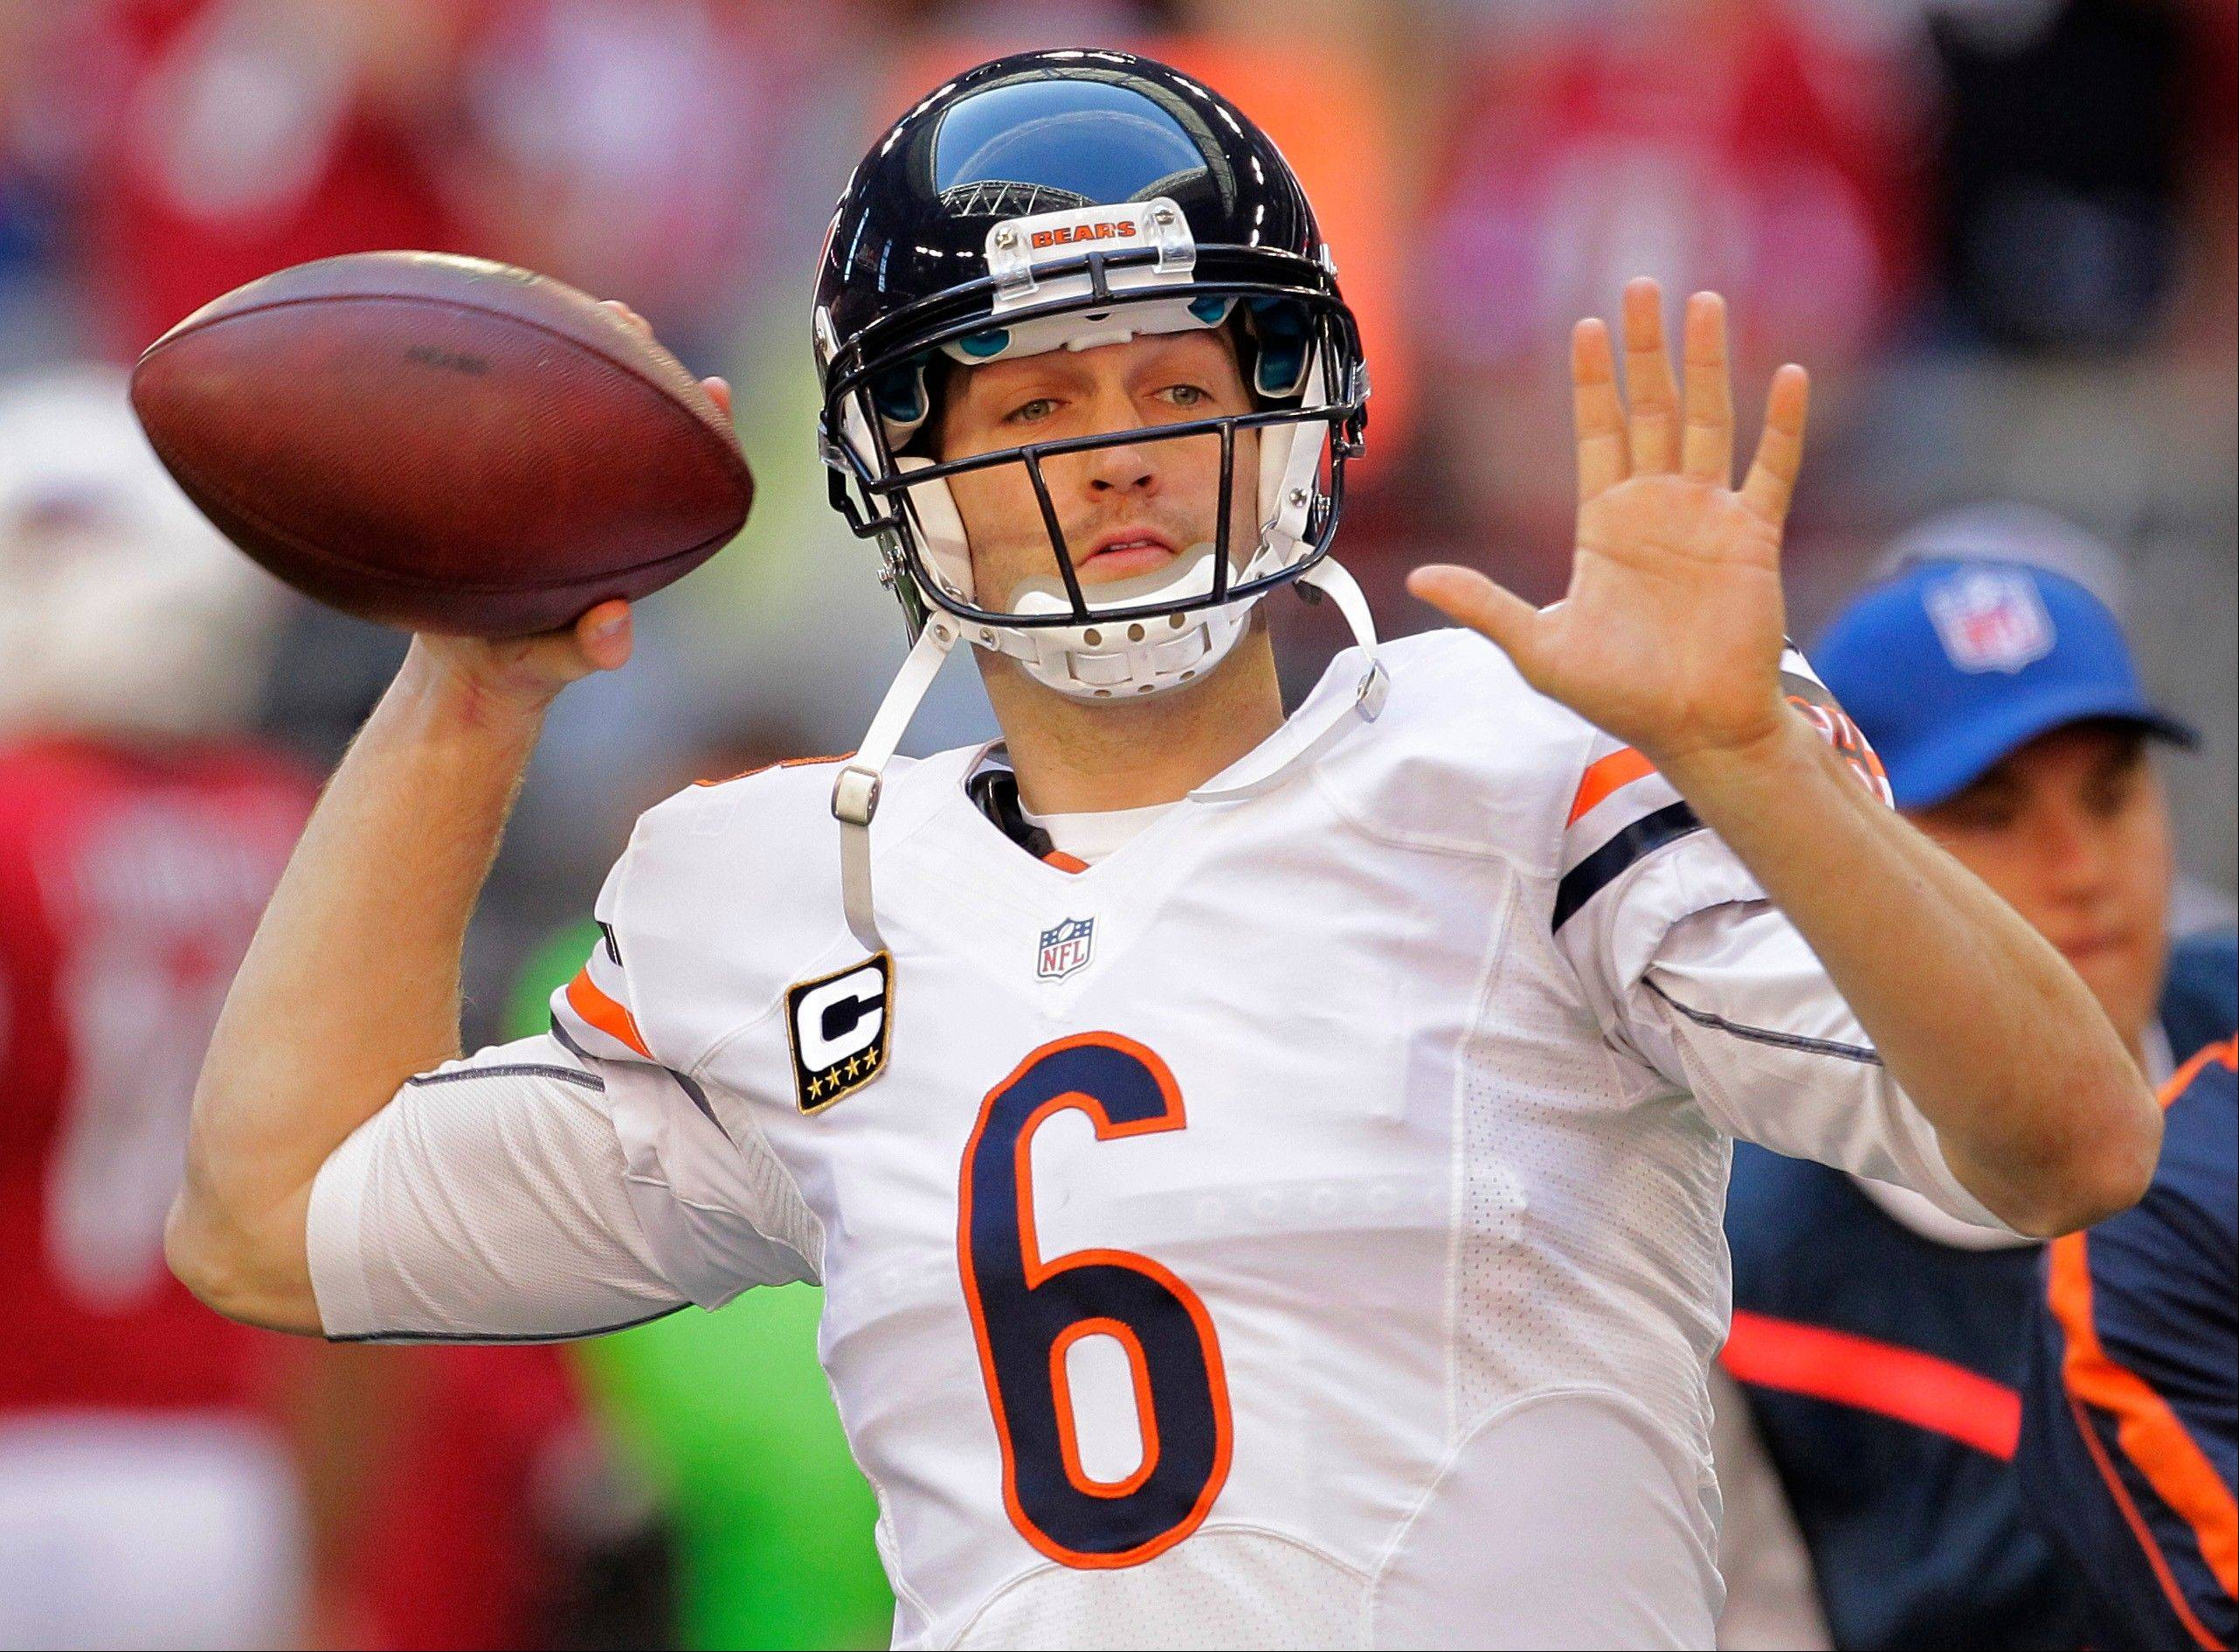 Bears quarterback Jay Cutler's passer rating for the season is 80.2, 22nd in the NFL.